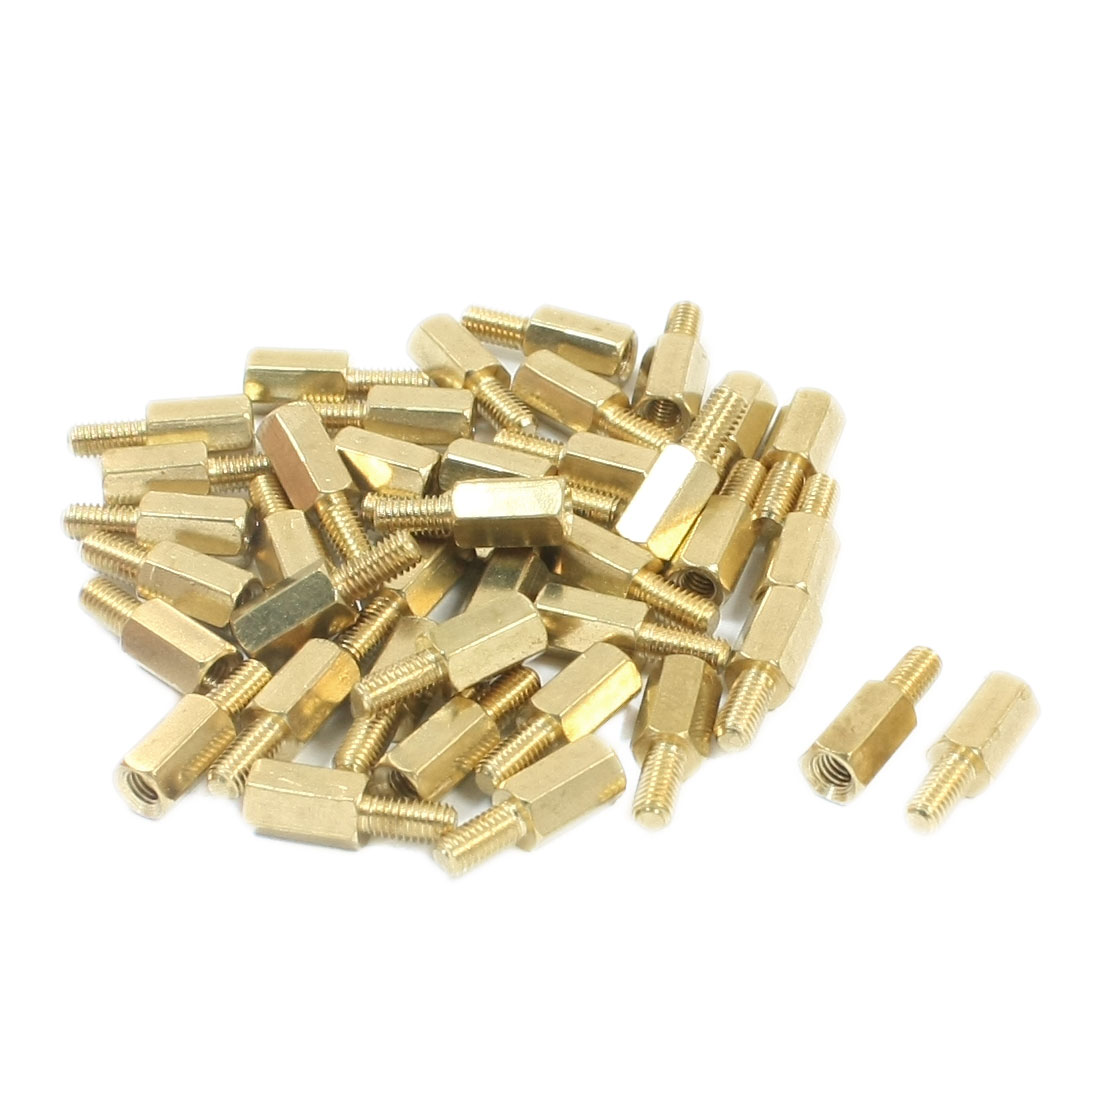 M3 Male/Female Thread Gold Tone Brass Pillar PCB Hexagon Standoff Spacer 6mmx12mm 40Pcs